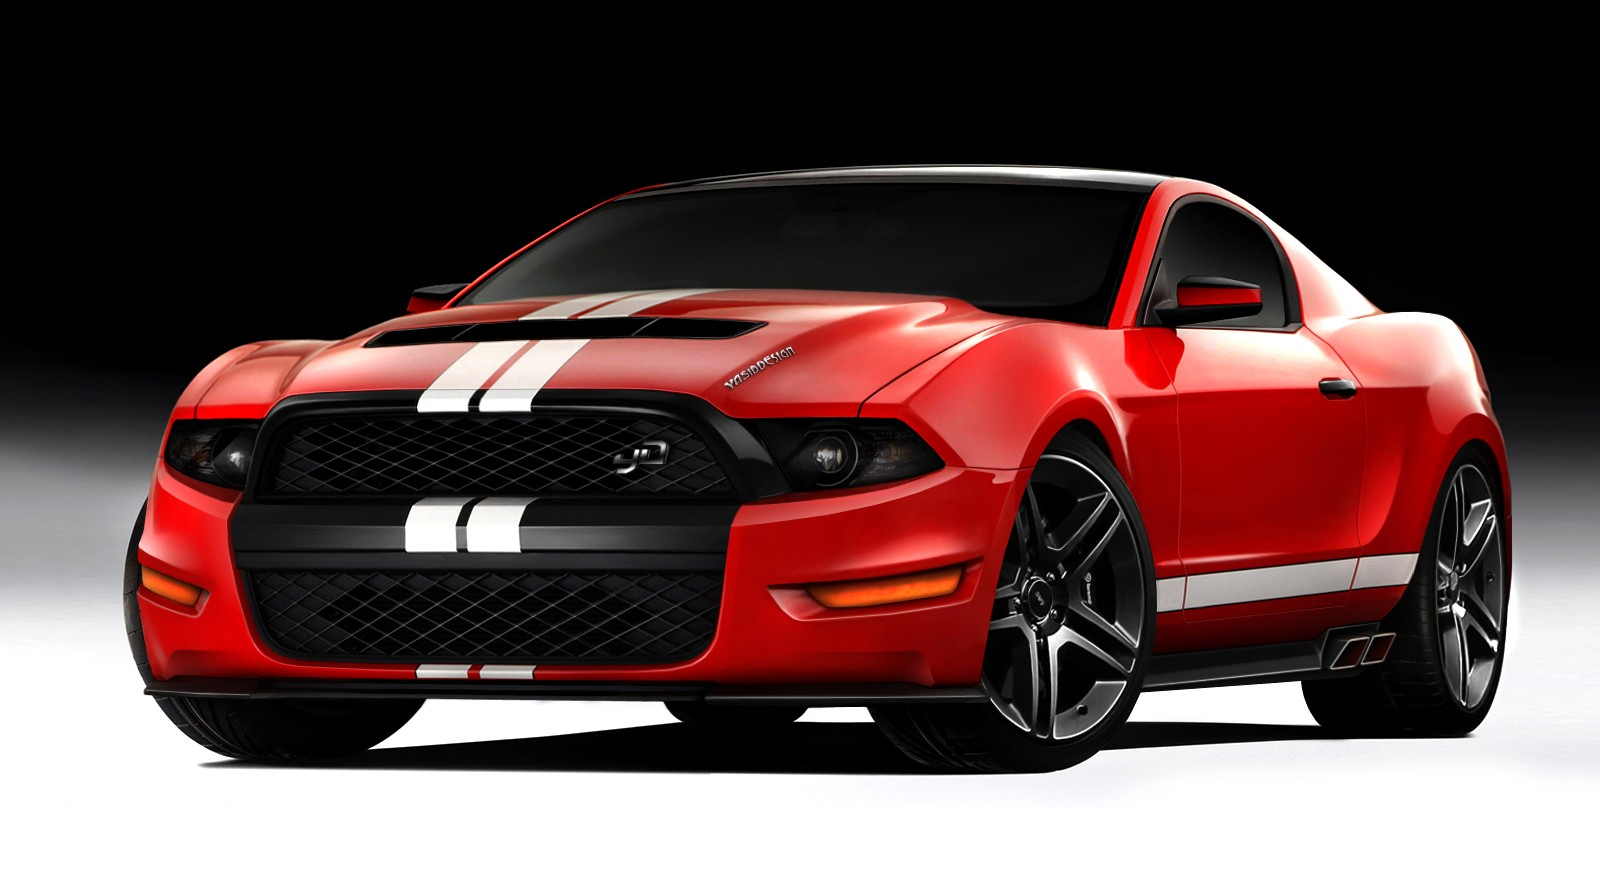 Wallpaper Ford Mustang Sports Car Wallpaper Hd Download Background 1600x892